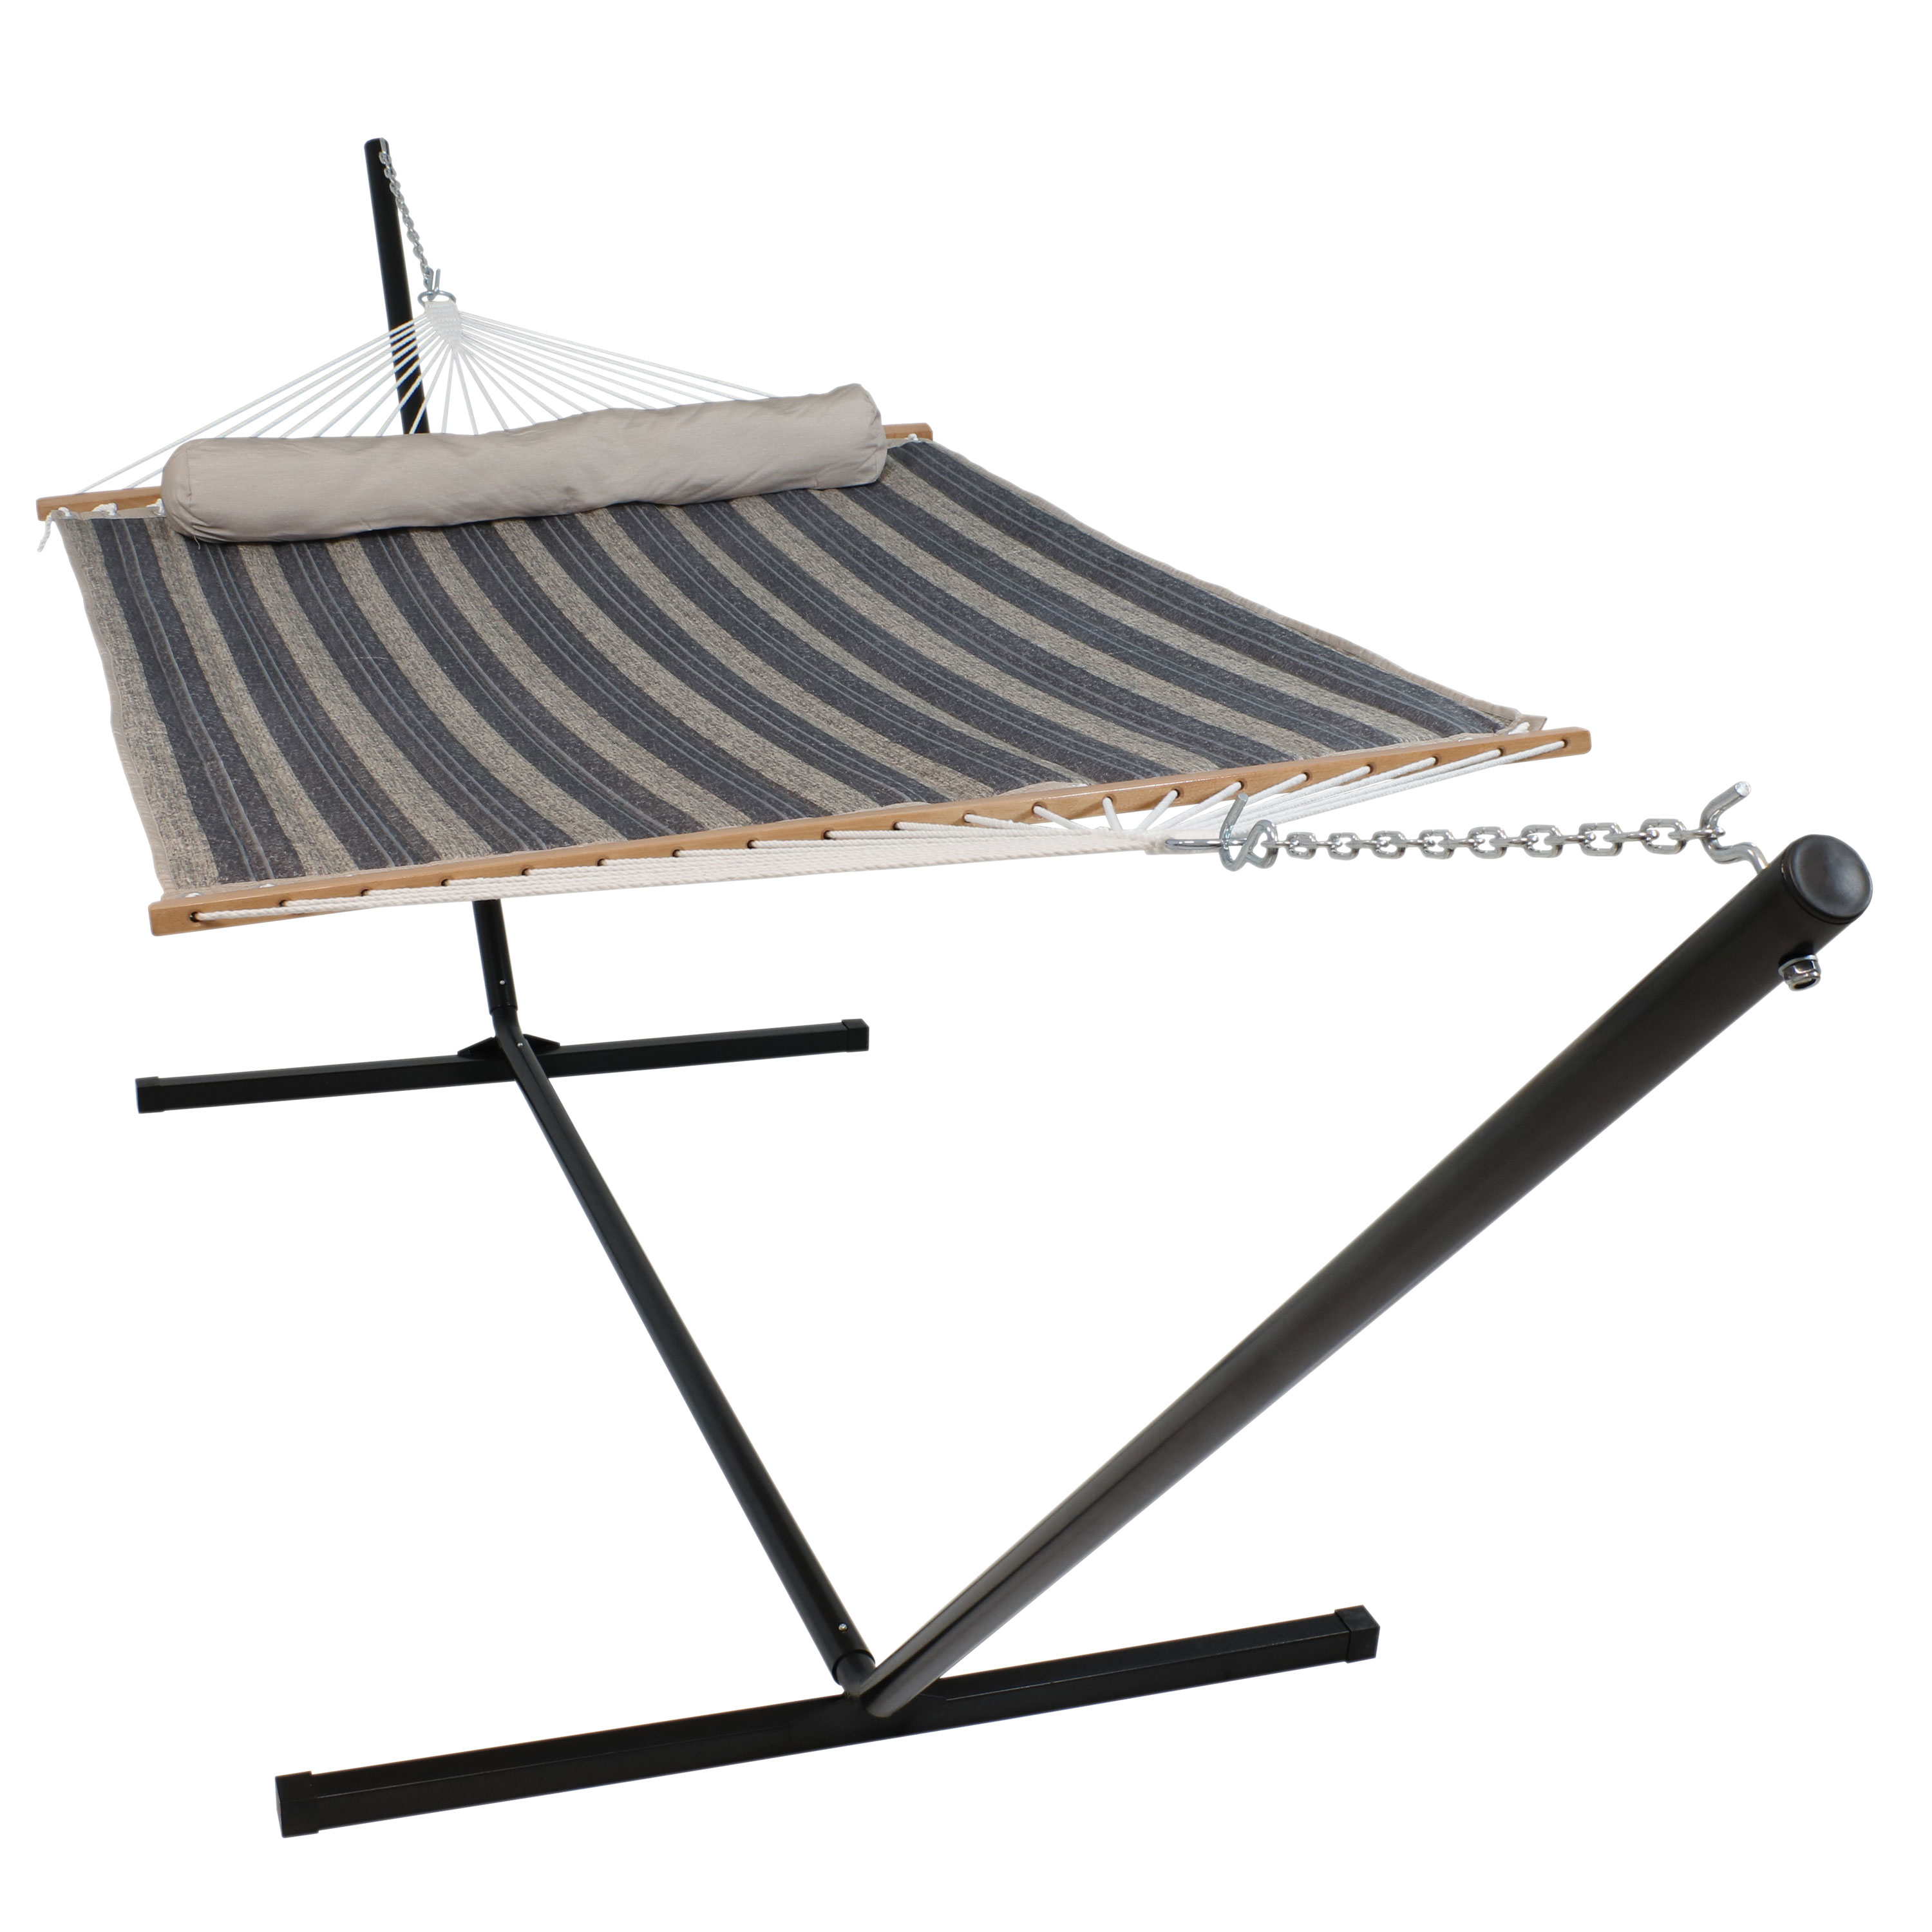 Sunnydaze Quilted Fabric Hammock Two Person with 15-Foot Stand and Spreader Bars, Freestanding Outdoor Heavy Duty 400 Pound Capacity, Mountainside